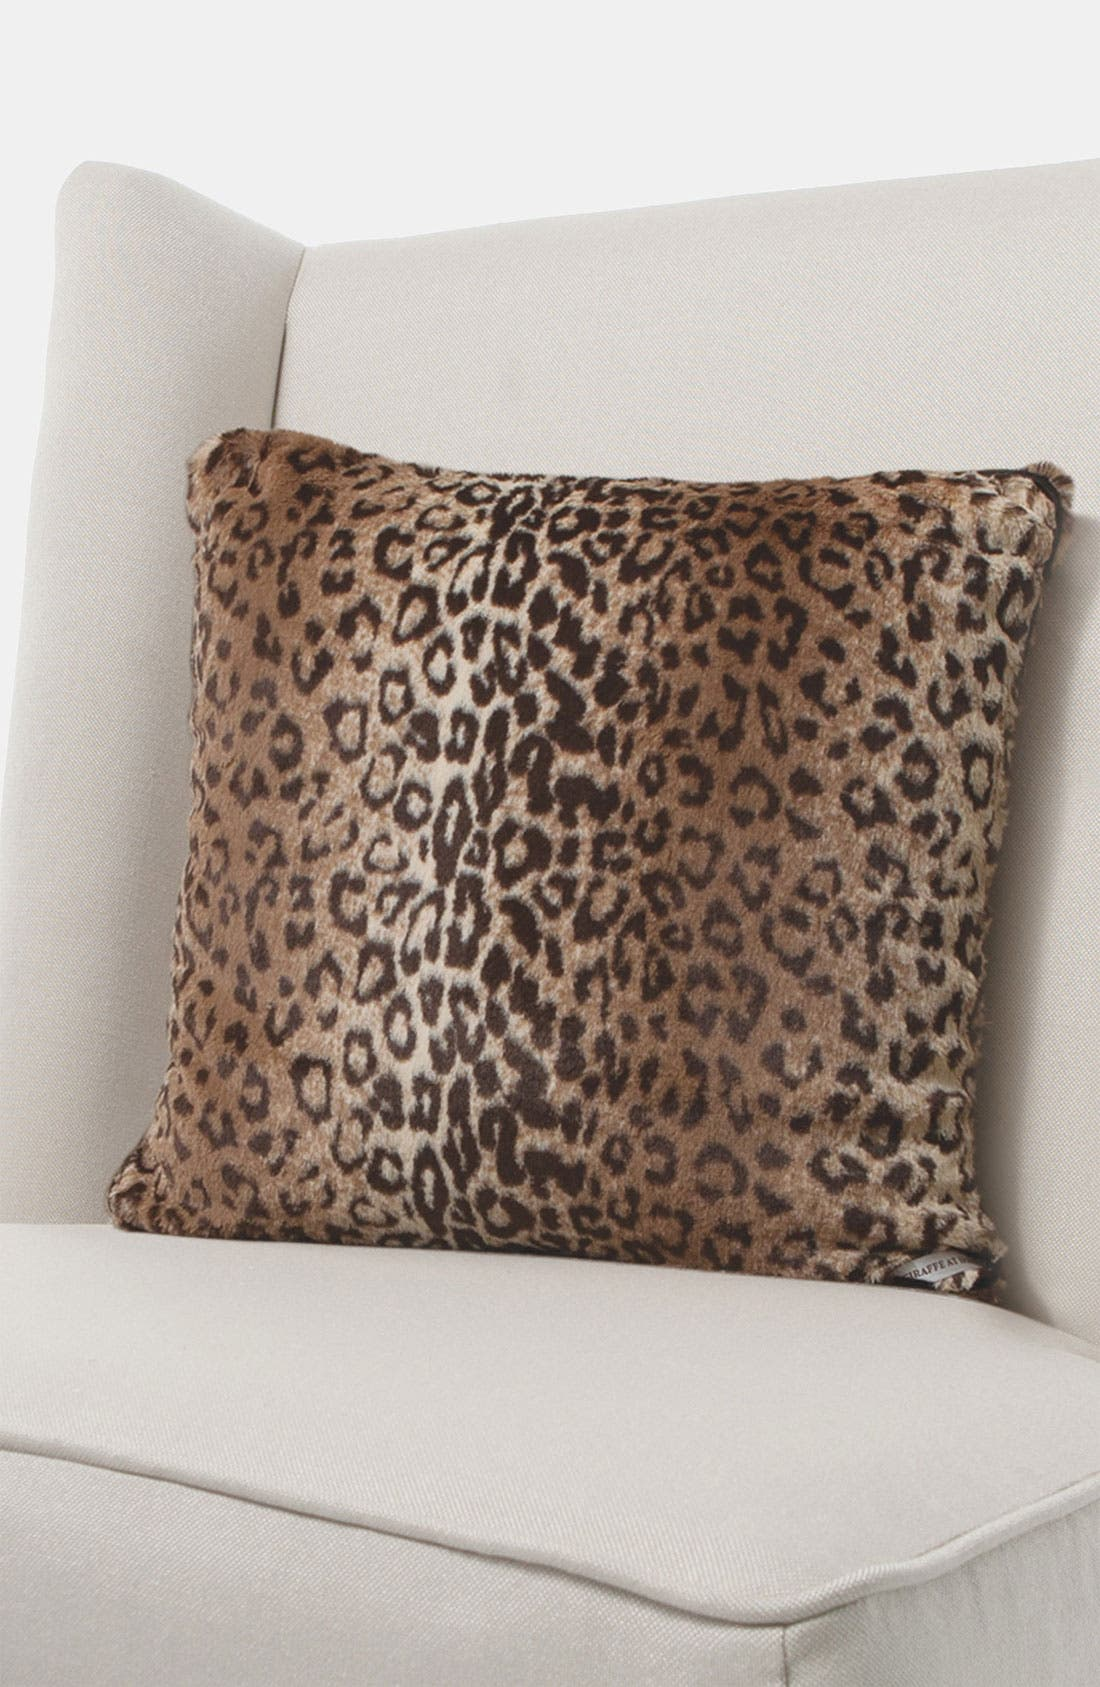 Alternate Image 1 Selected - Giraffe at Home 'Luxe Leopard' Throw Pillow (Online Only)